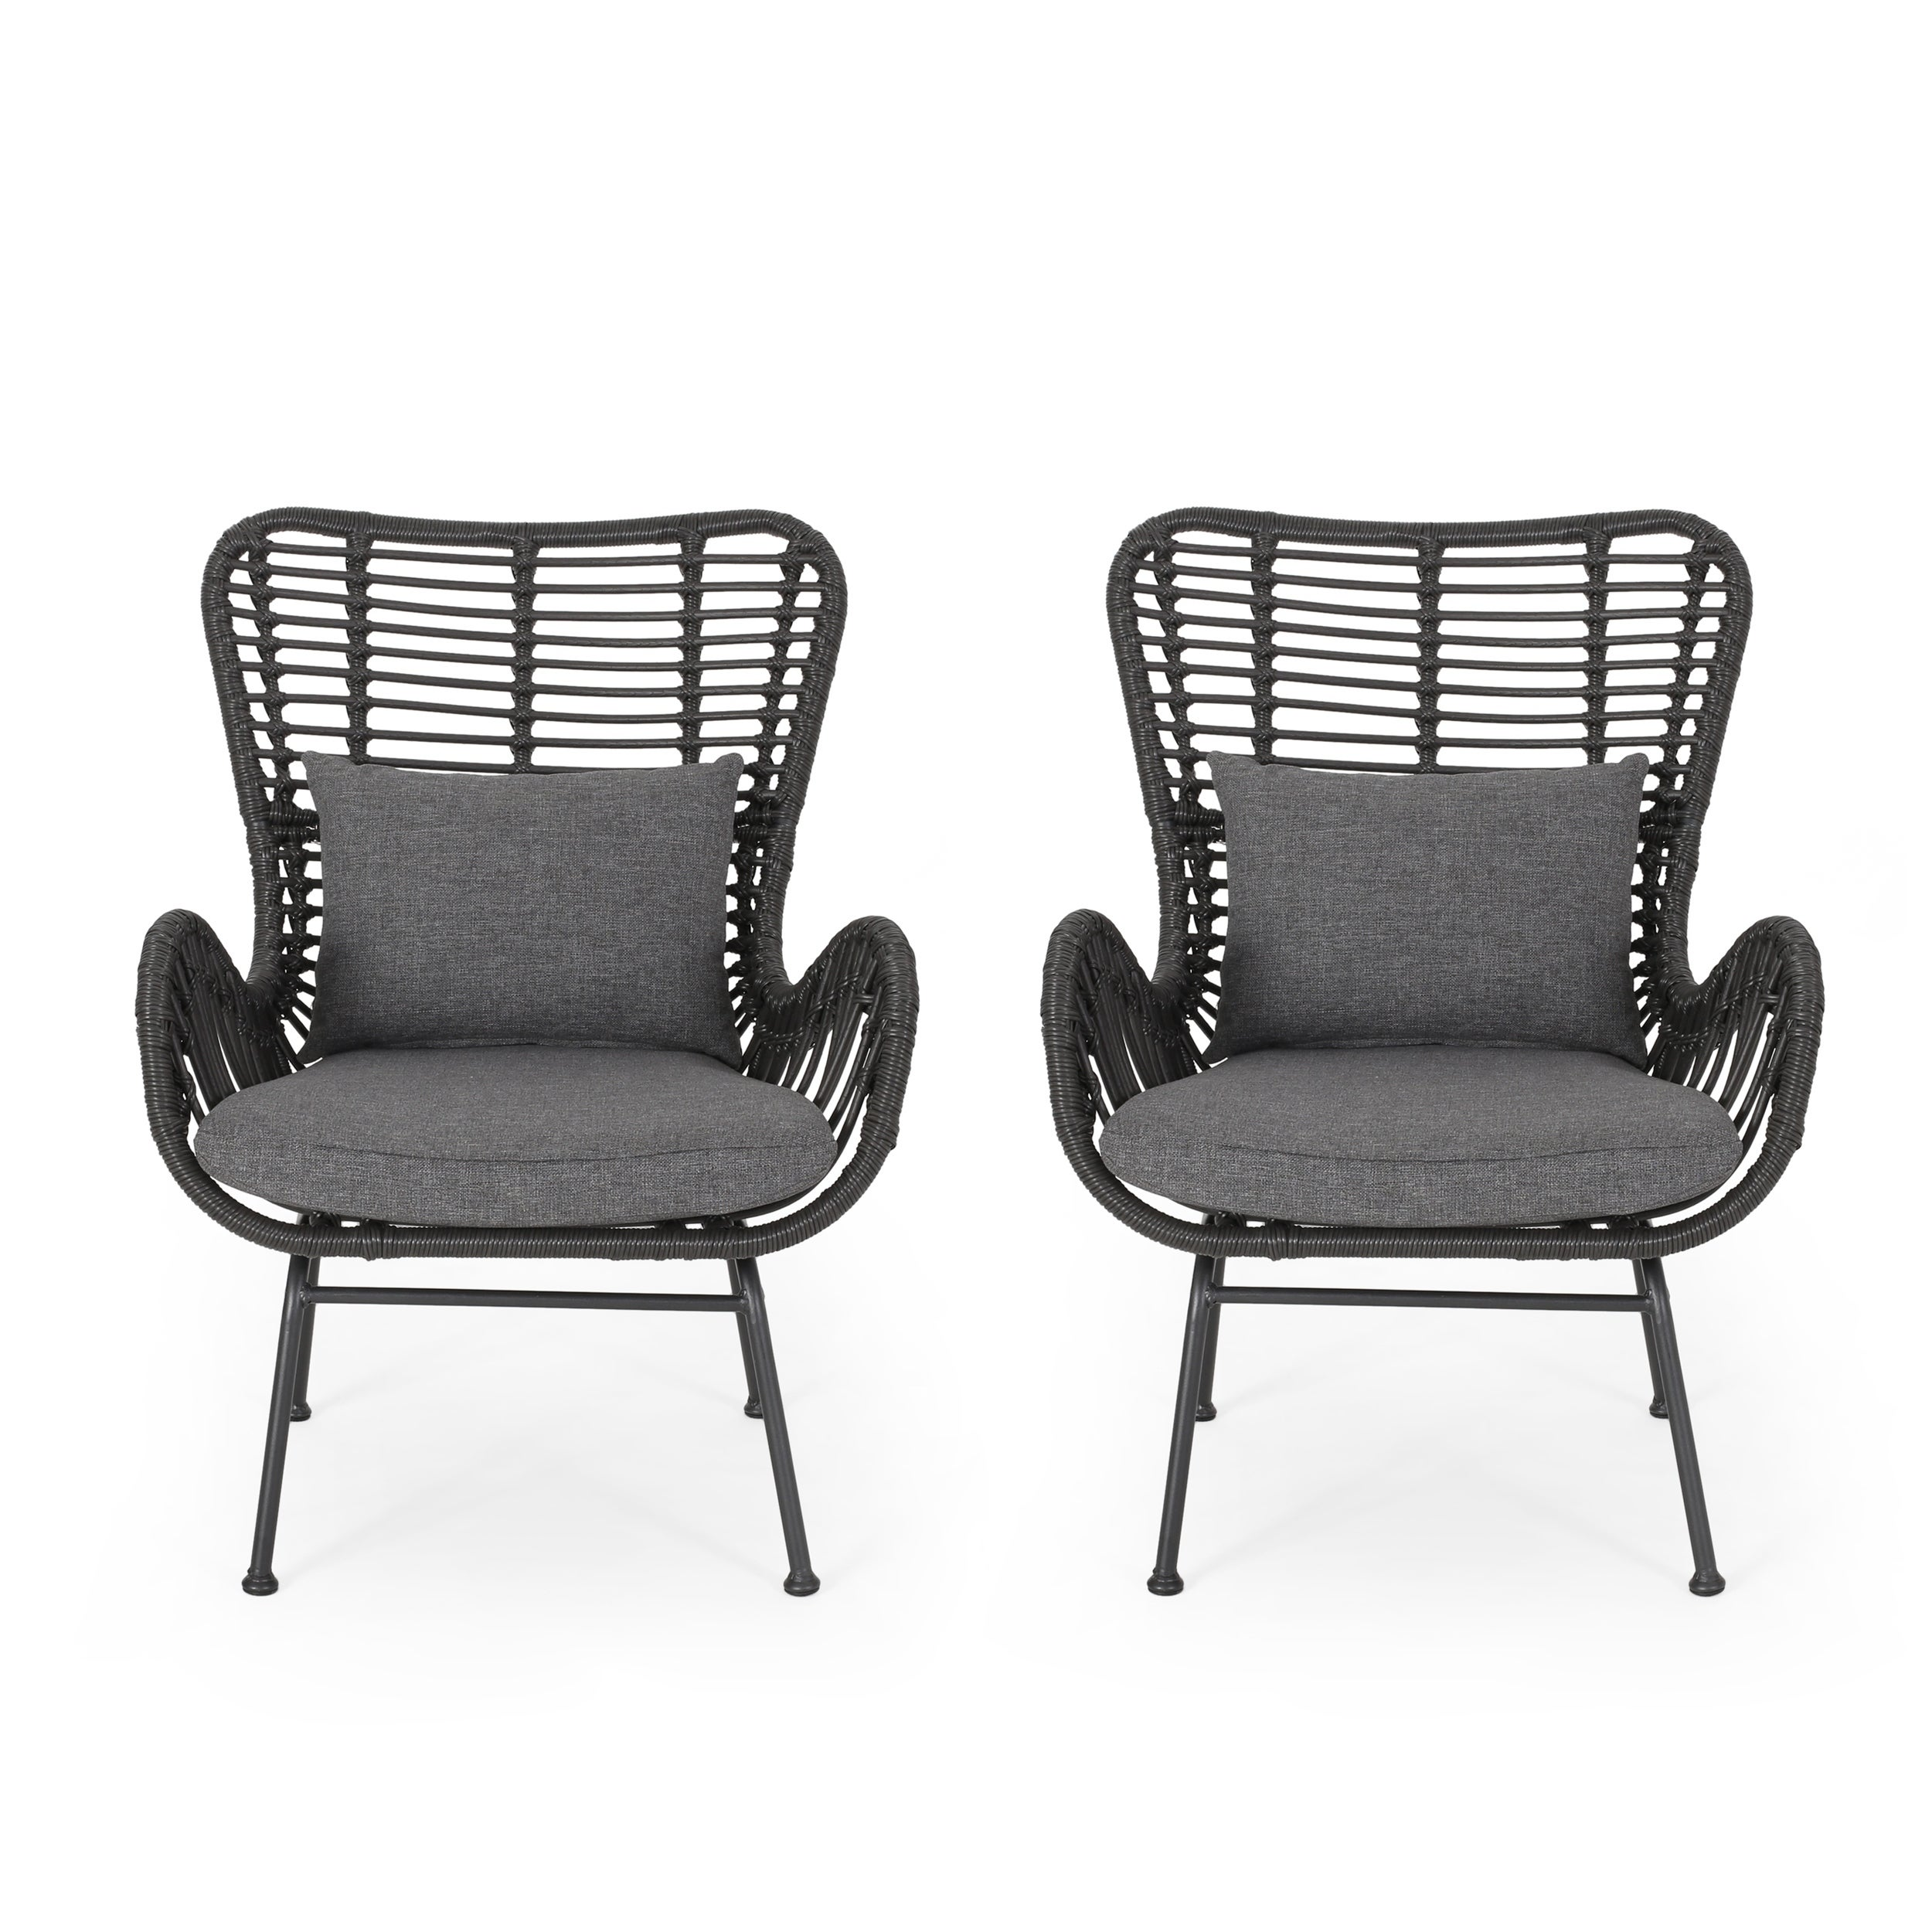 Montana Indoor Wicker Club Chairs With Cushions Set Of 2 By Christopher Knight Home